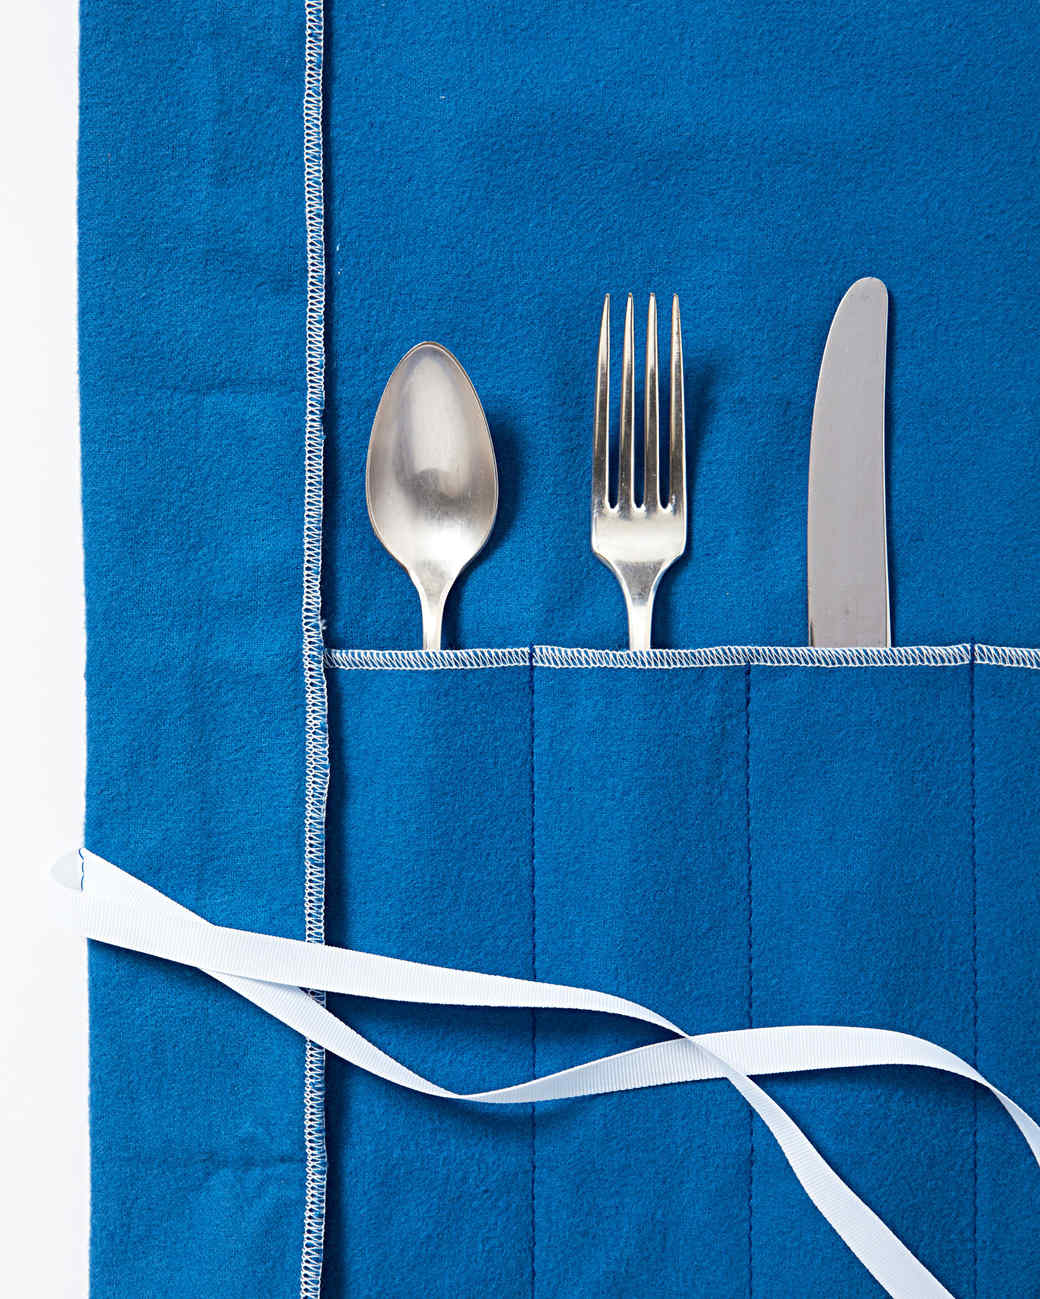 silverware in flannel cover